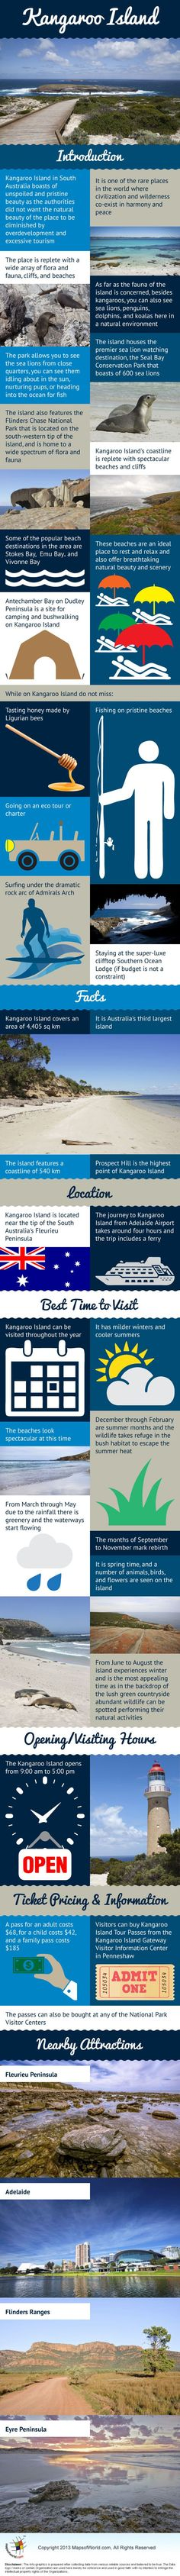 Kangaroo Island, South Australia - Infographic, Facts, Weather